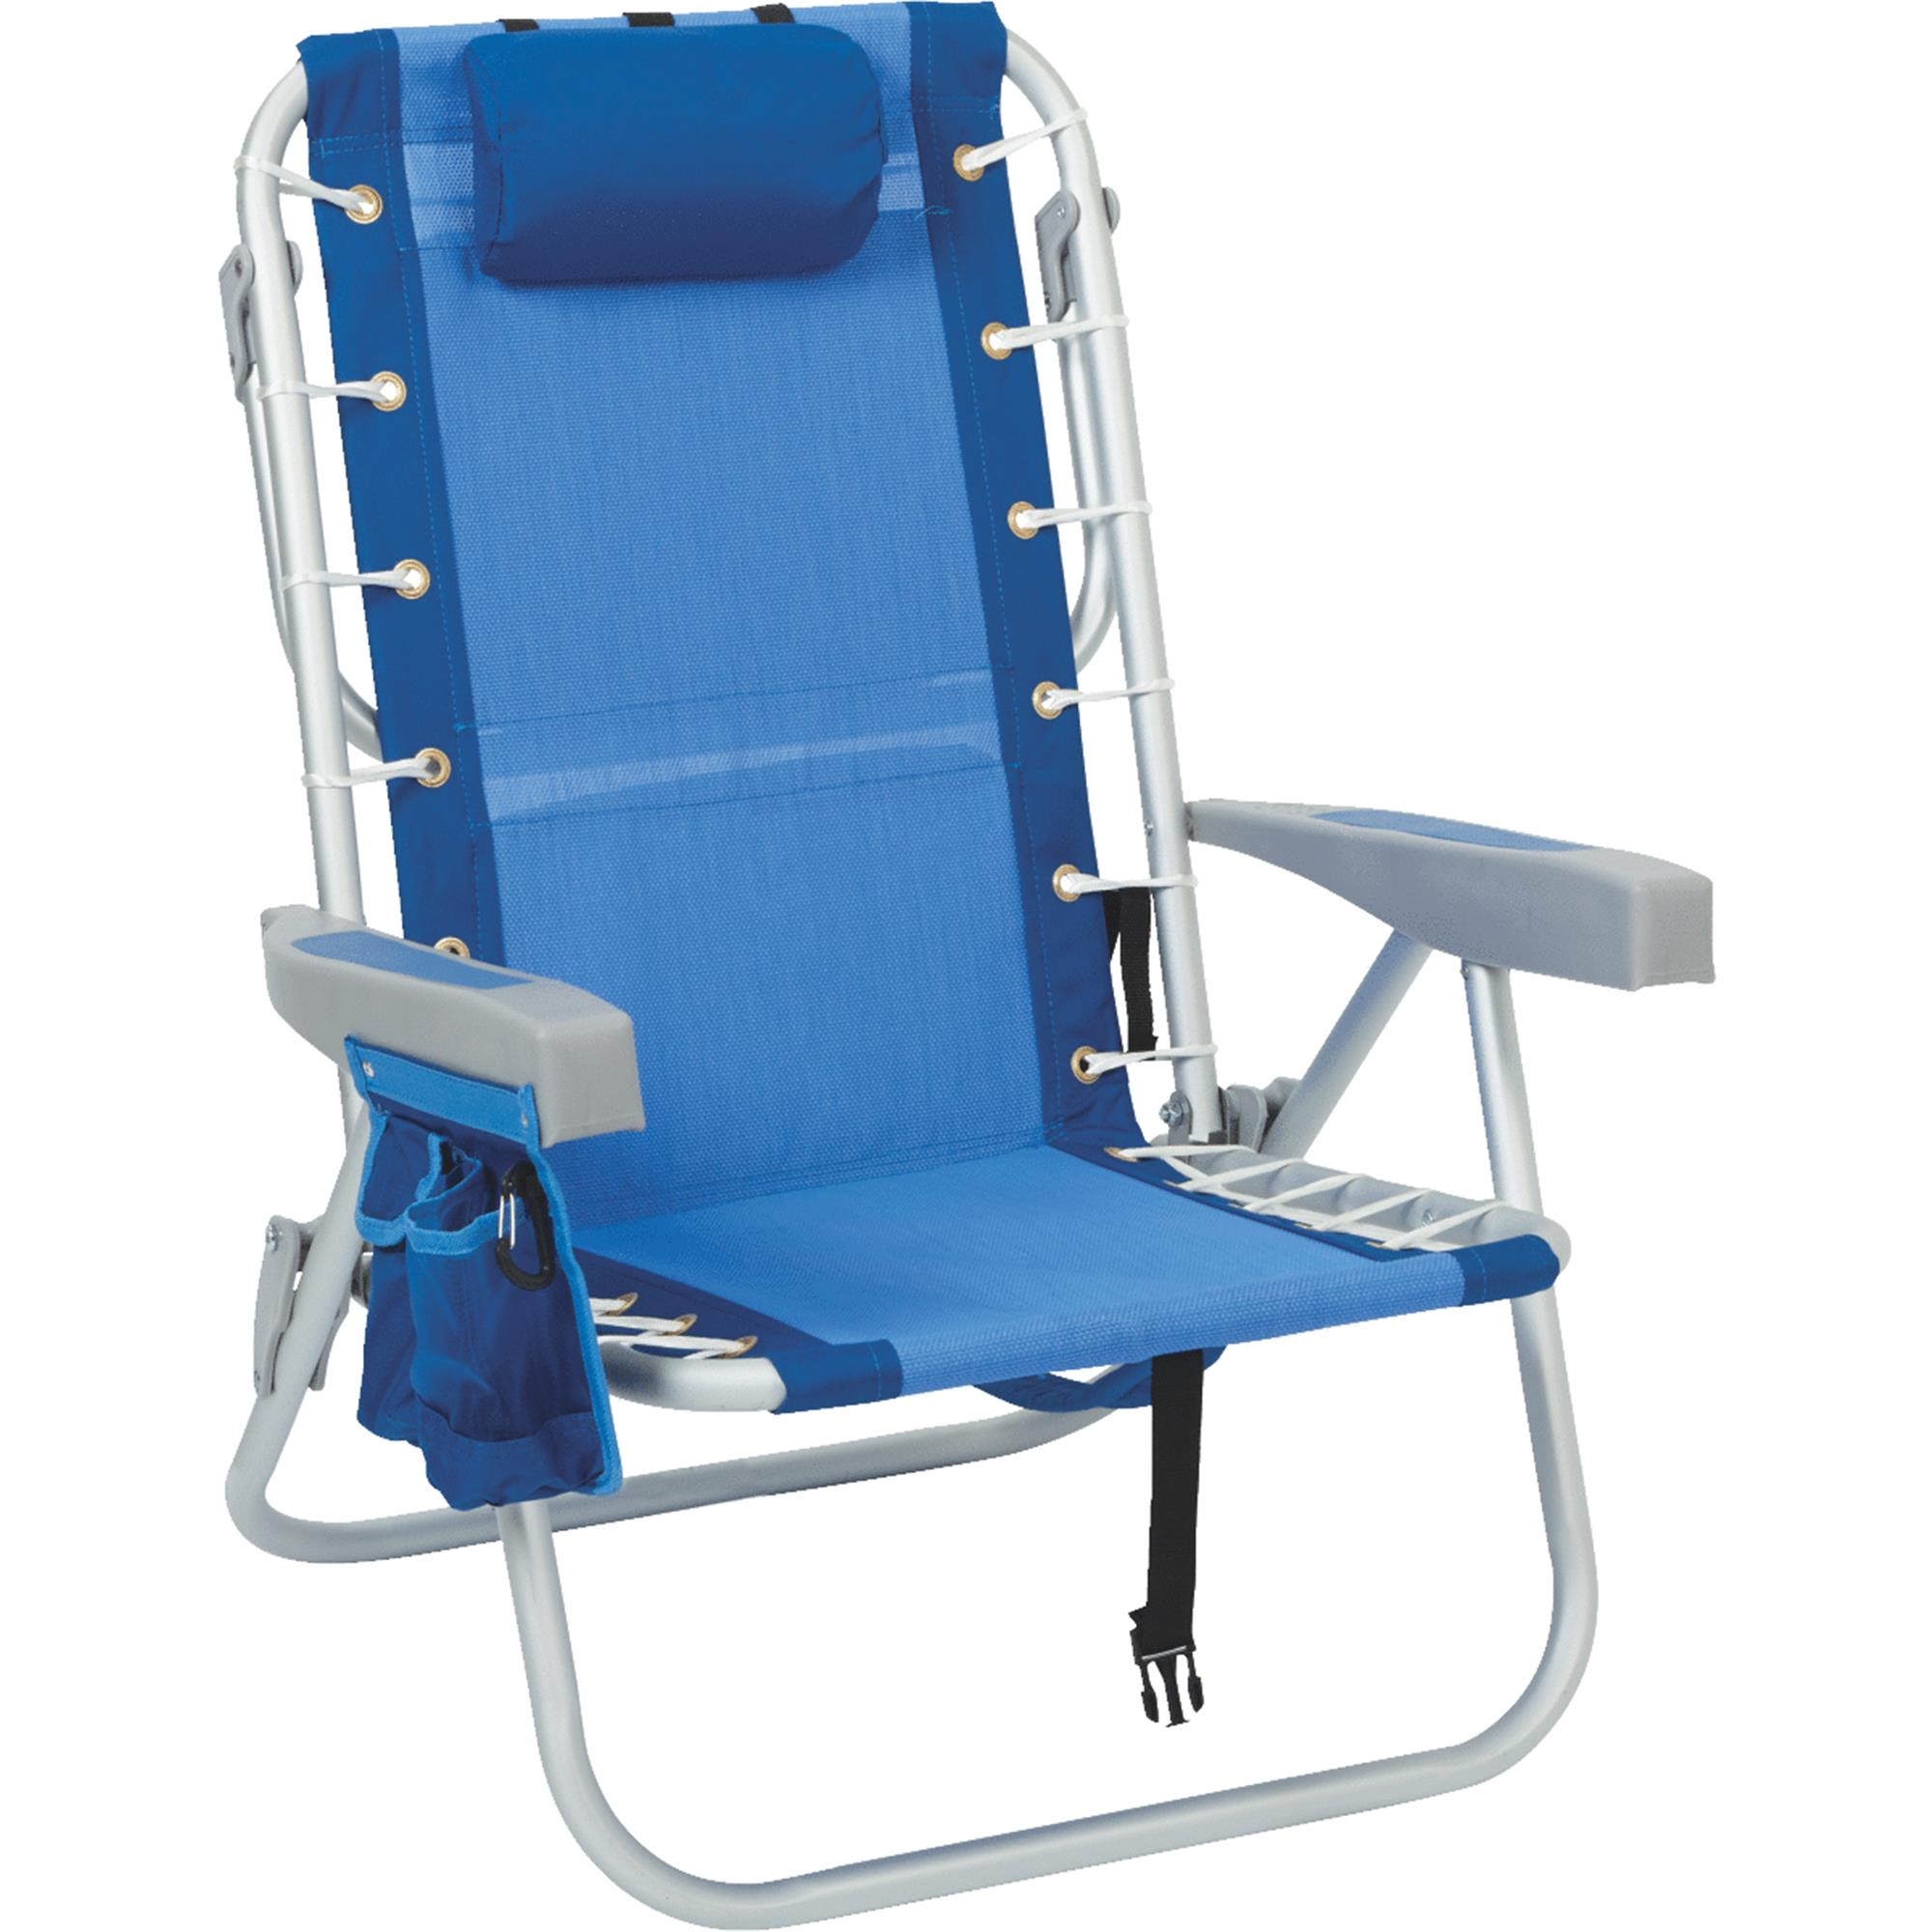 Rio Brands Lace-Up Backpack Folding Lawn Chair